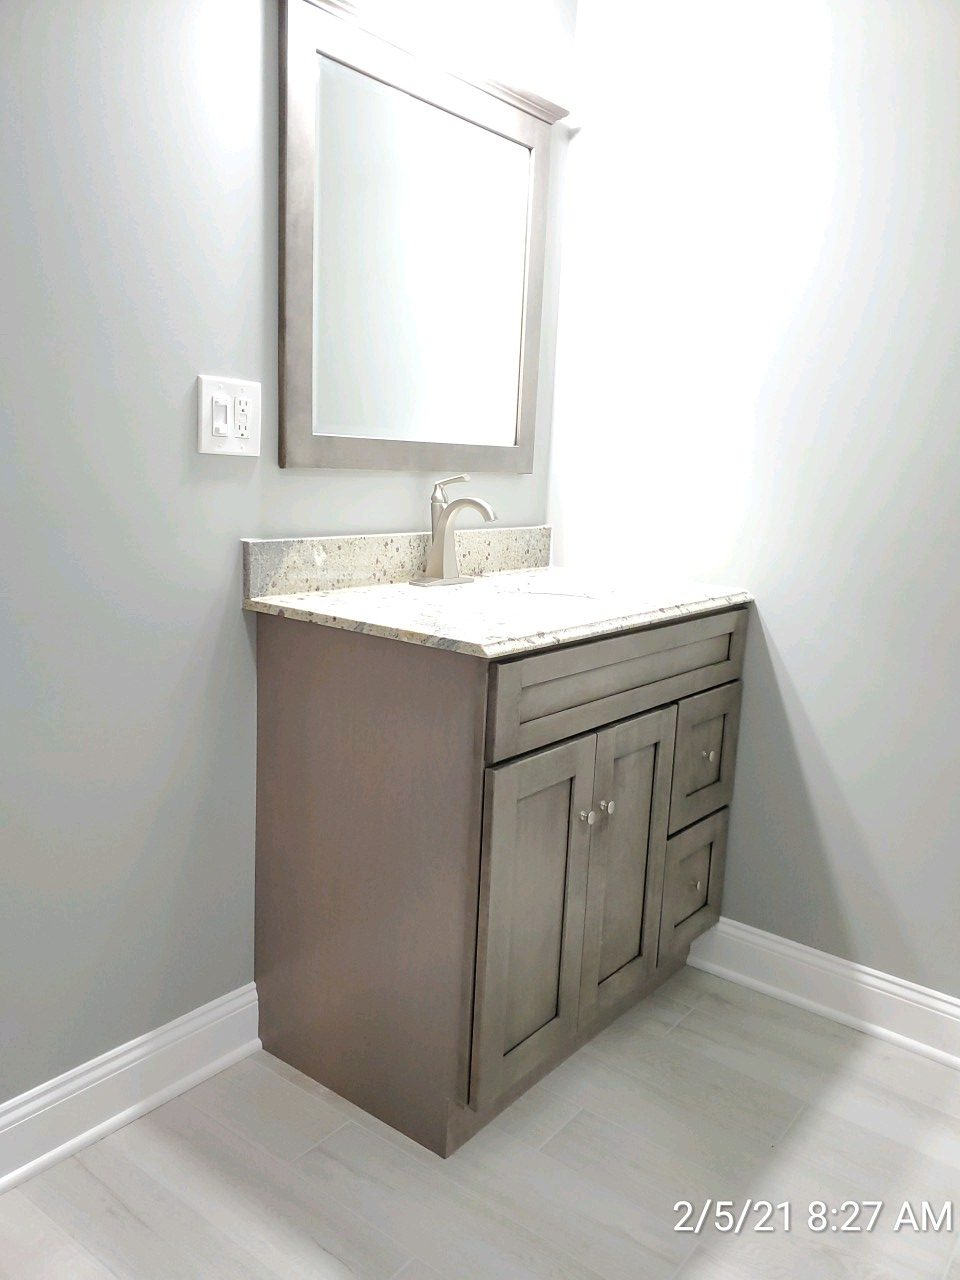 Bathroom remodel completed on a home in Harrisburg PA by L&L Services.